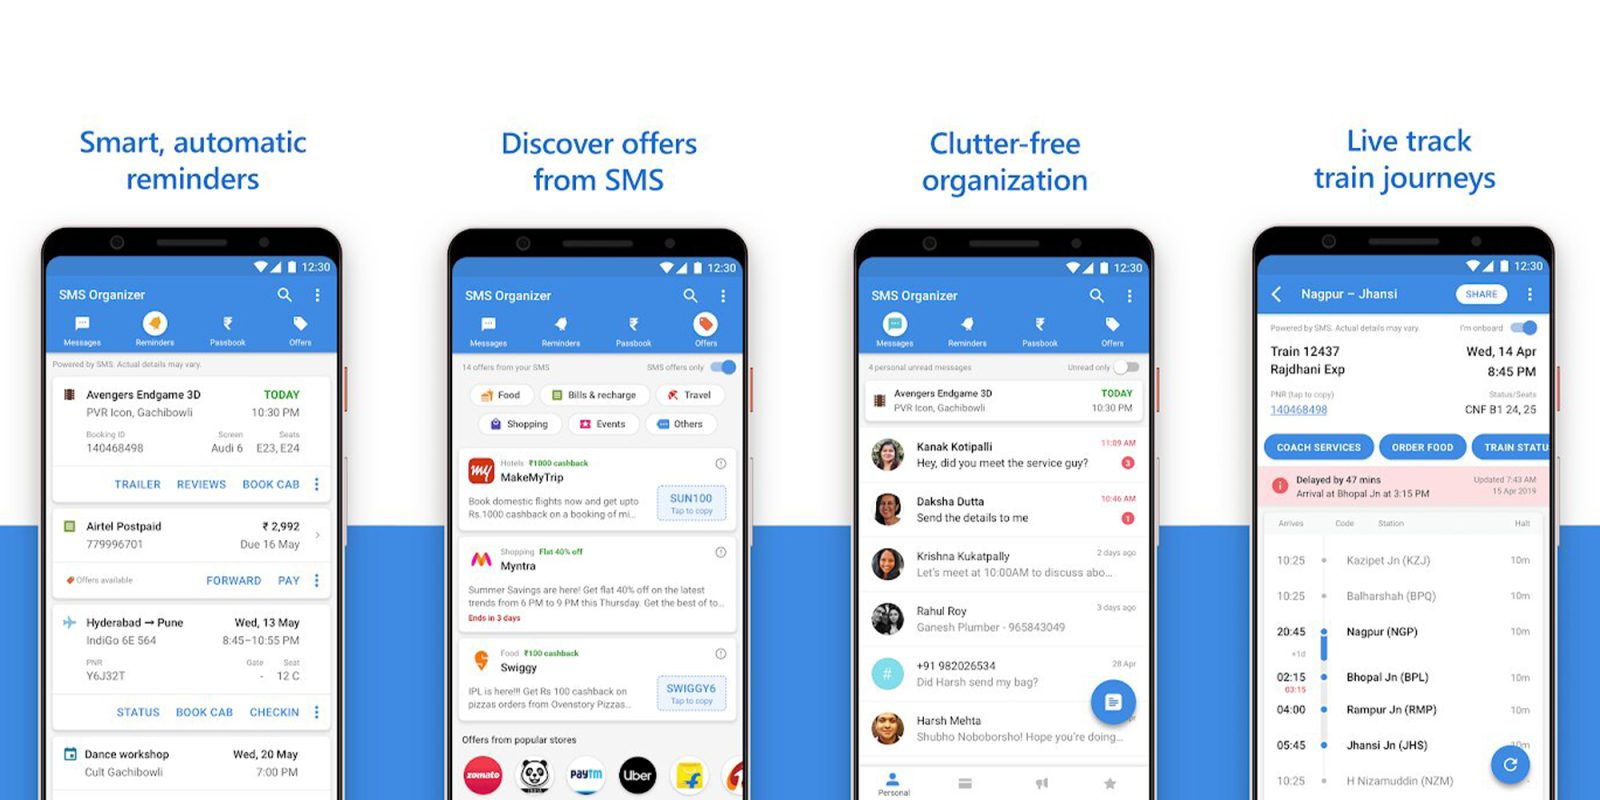 Microsoft SMS Organizer app now available in US, UK, Australia